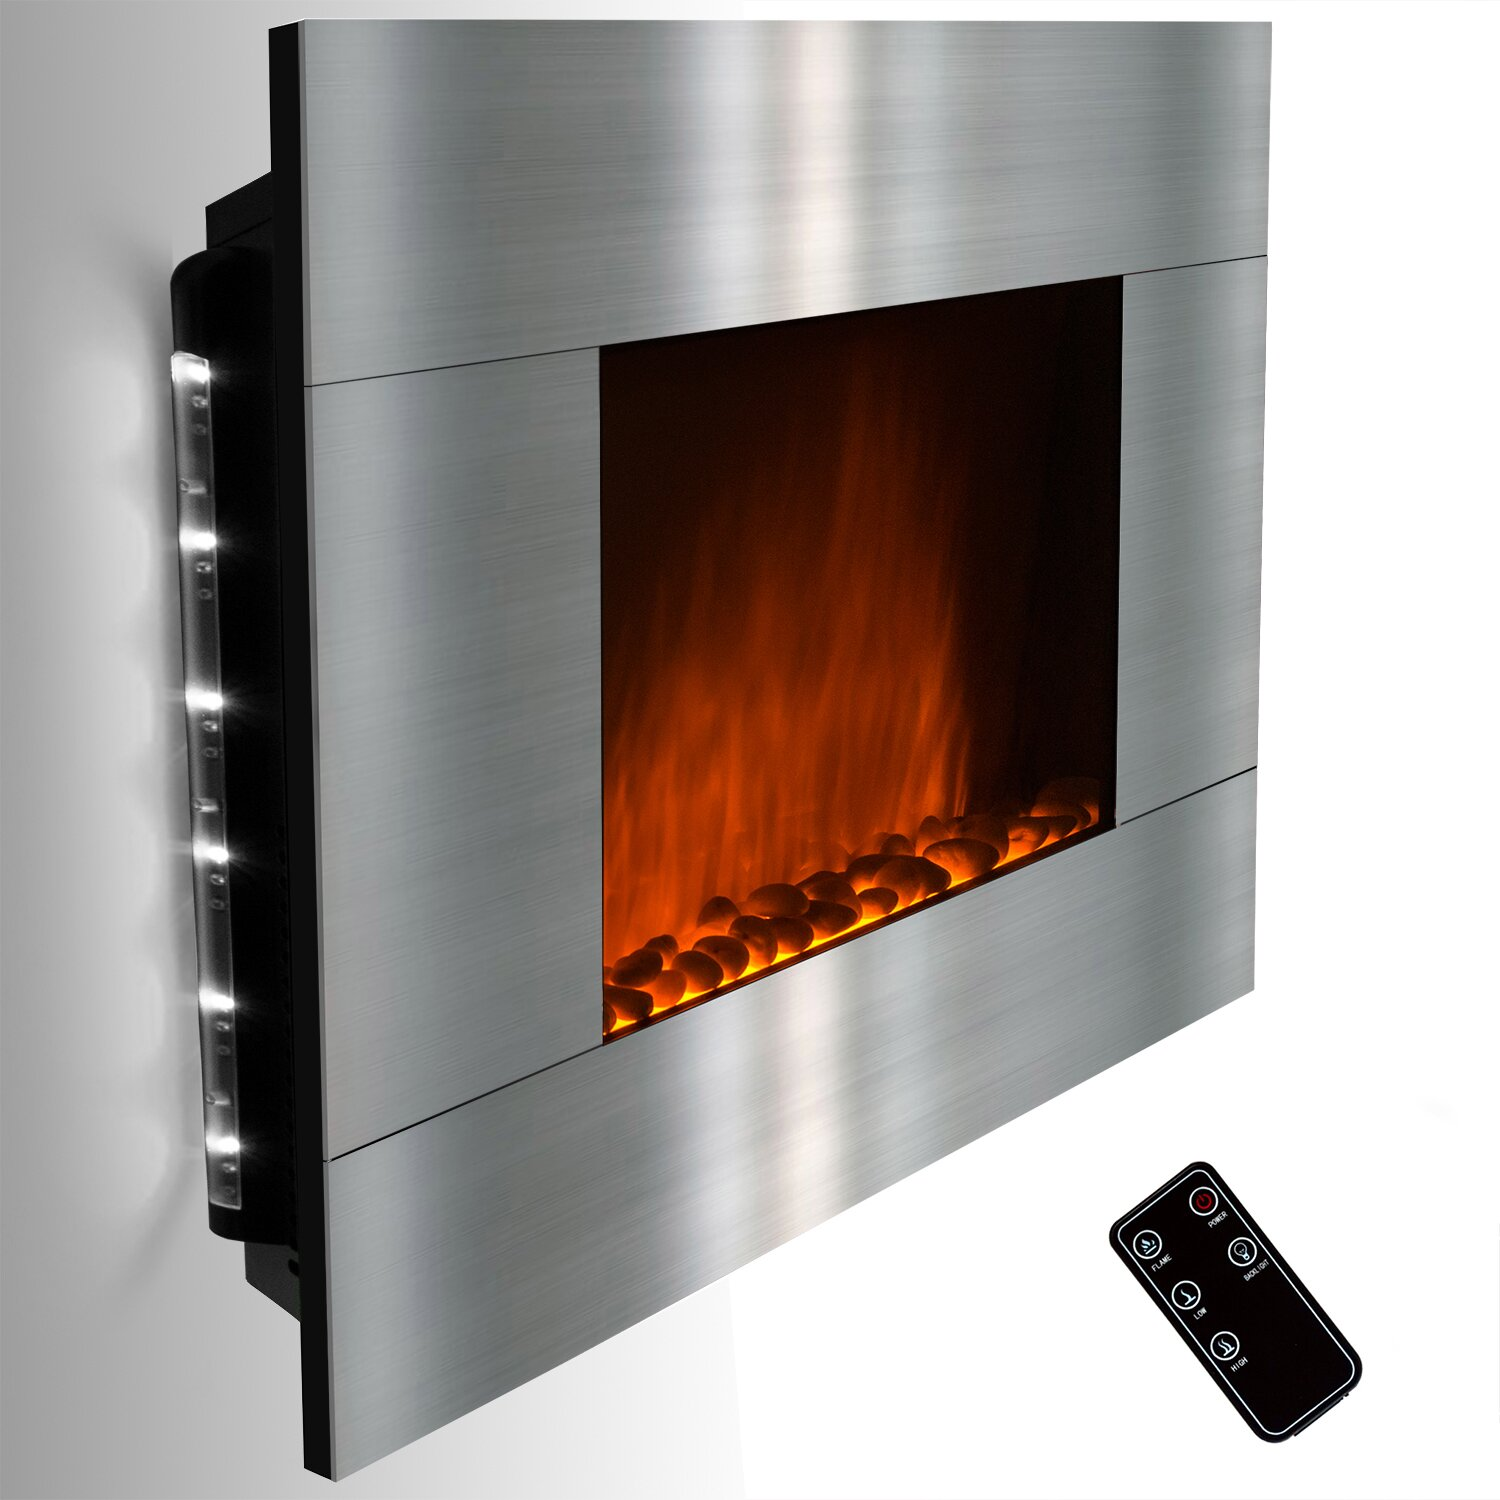 Wall: GoldenVantage Wall Mount Electric Fireplace & Reviews